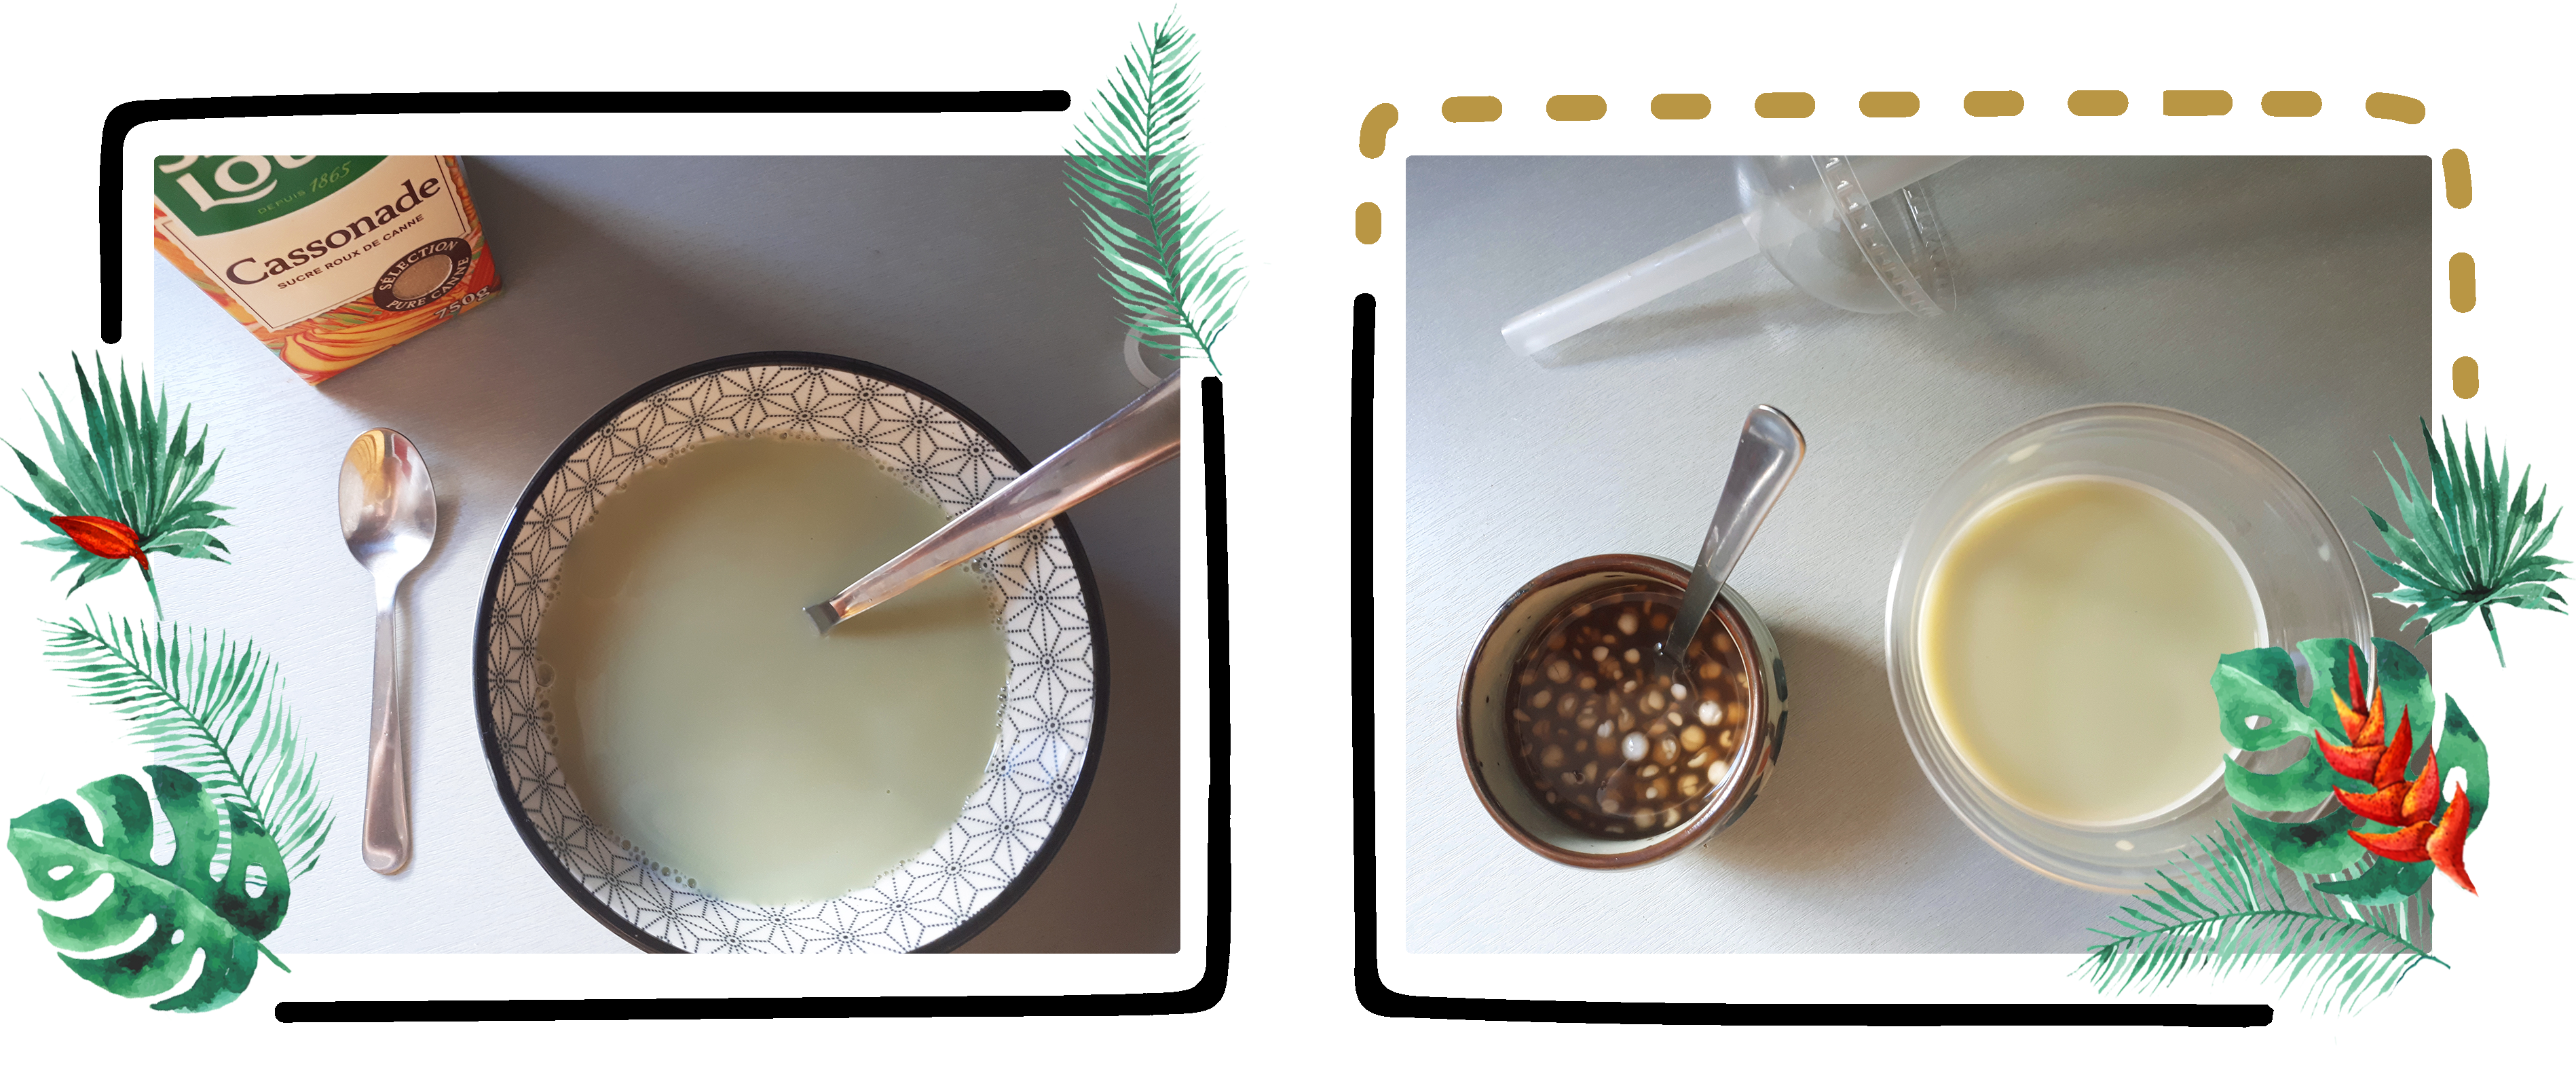 DIY-cuisine-bubble-tea-matcha-etape-7-8-Cactus-and-Style